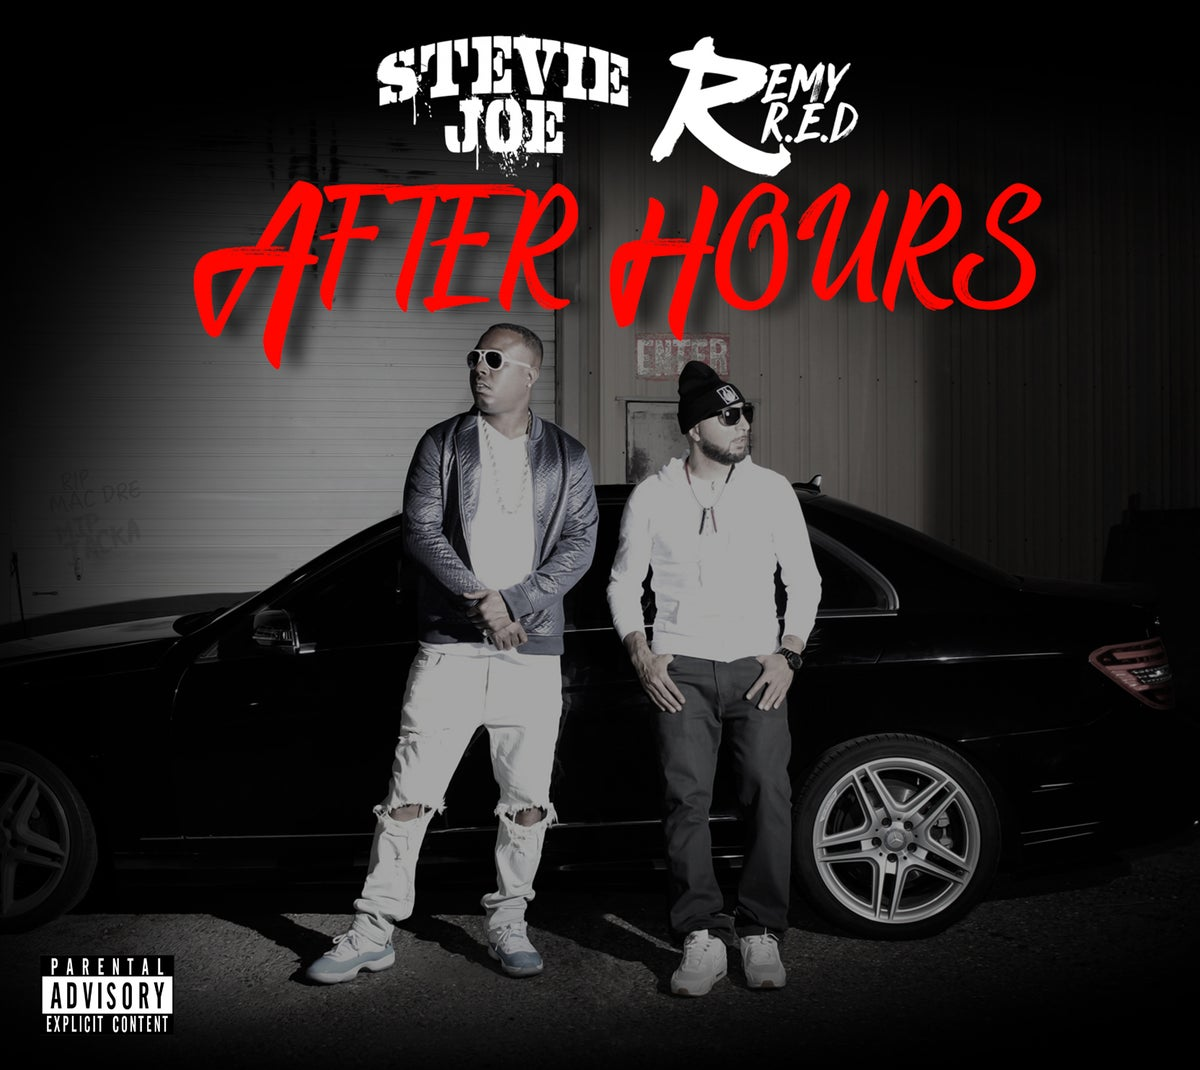 Image of Stevie Joe & Remy R.E.D AFTER HOURS Ep (Hard Copy)